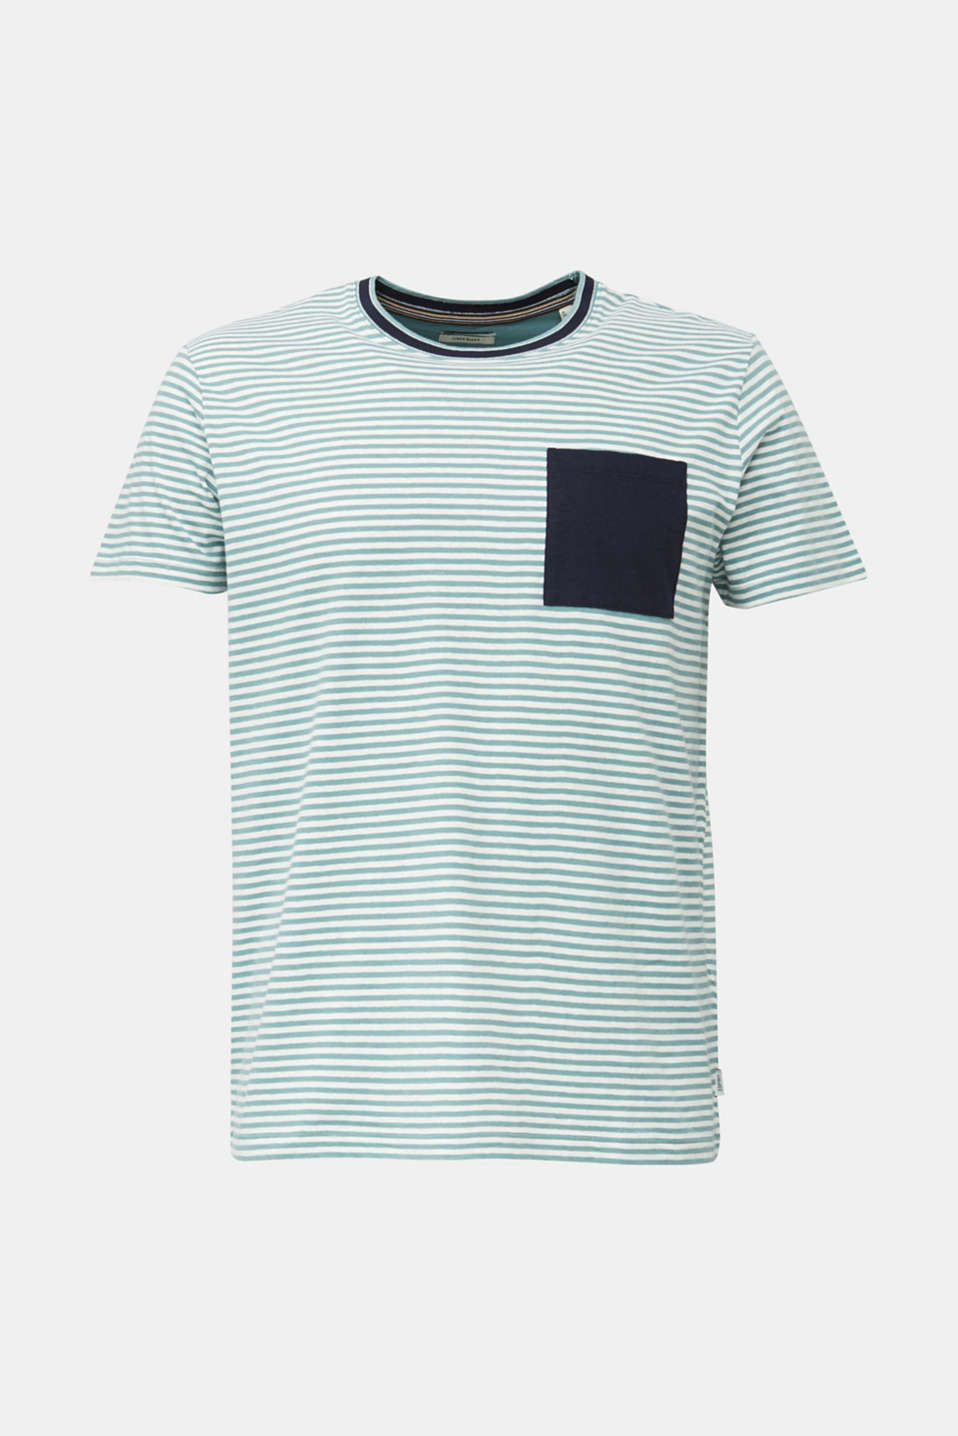 With linen: Jersey top with a pocket, TEAL GREEN 3, detail image number 7